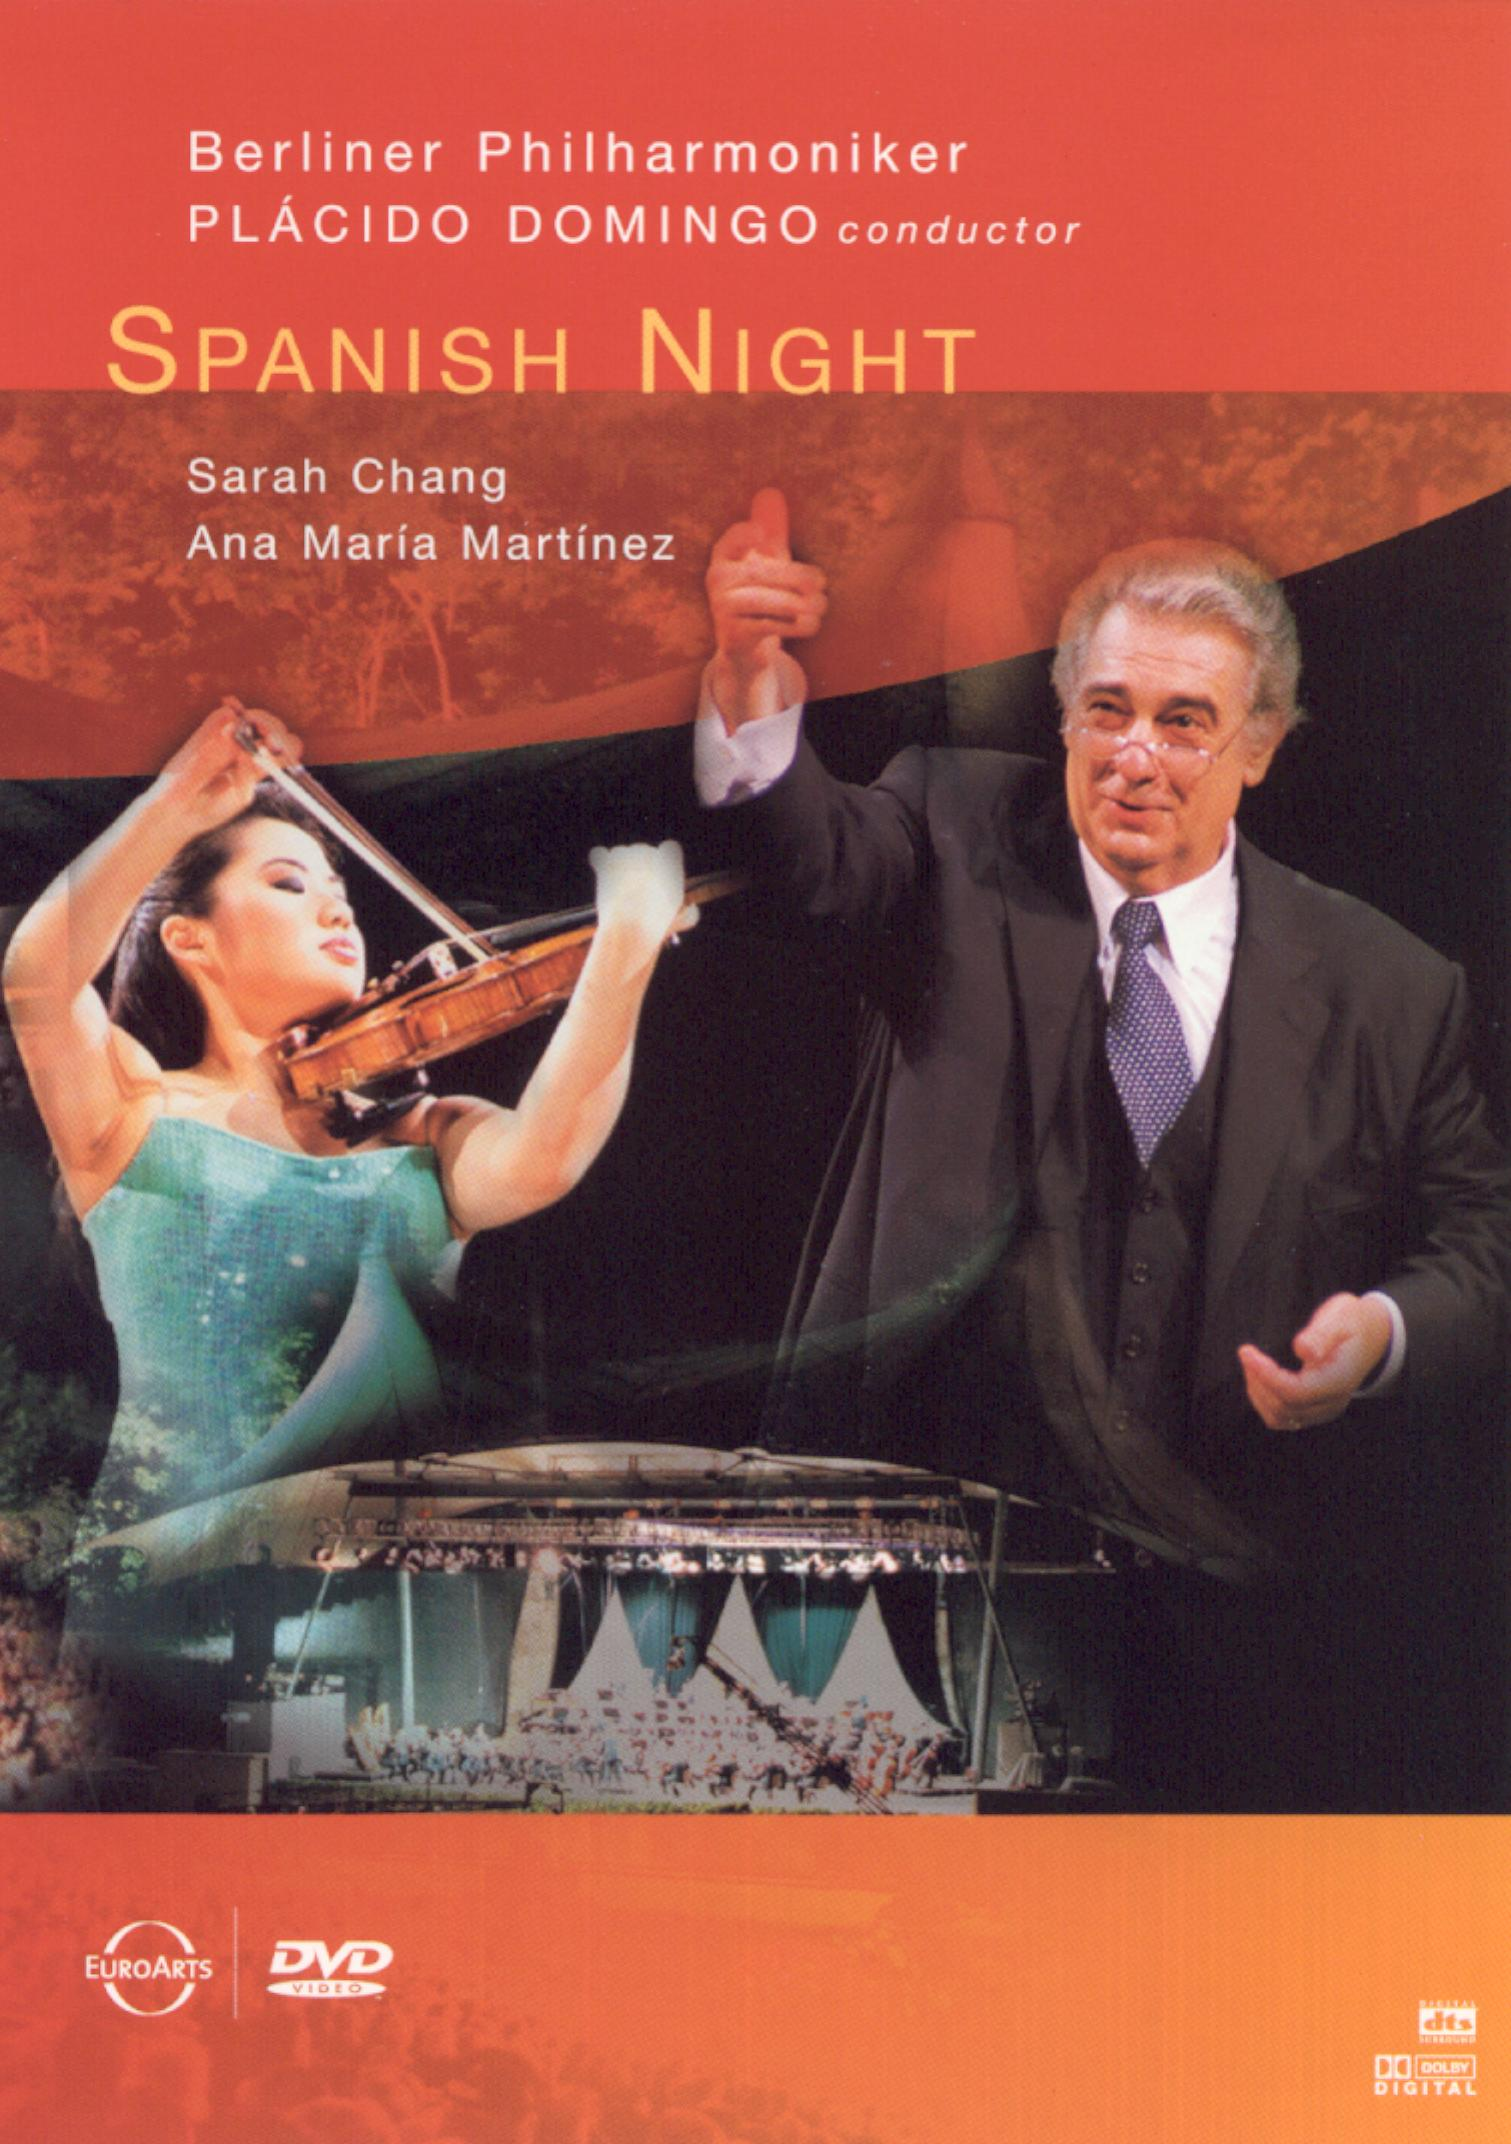 Spanish Night From the Berlin Waldbuhne